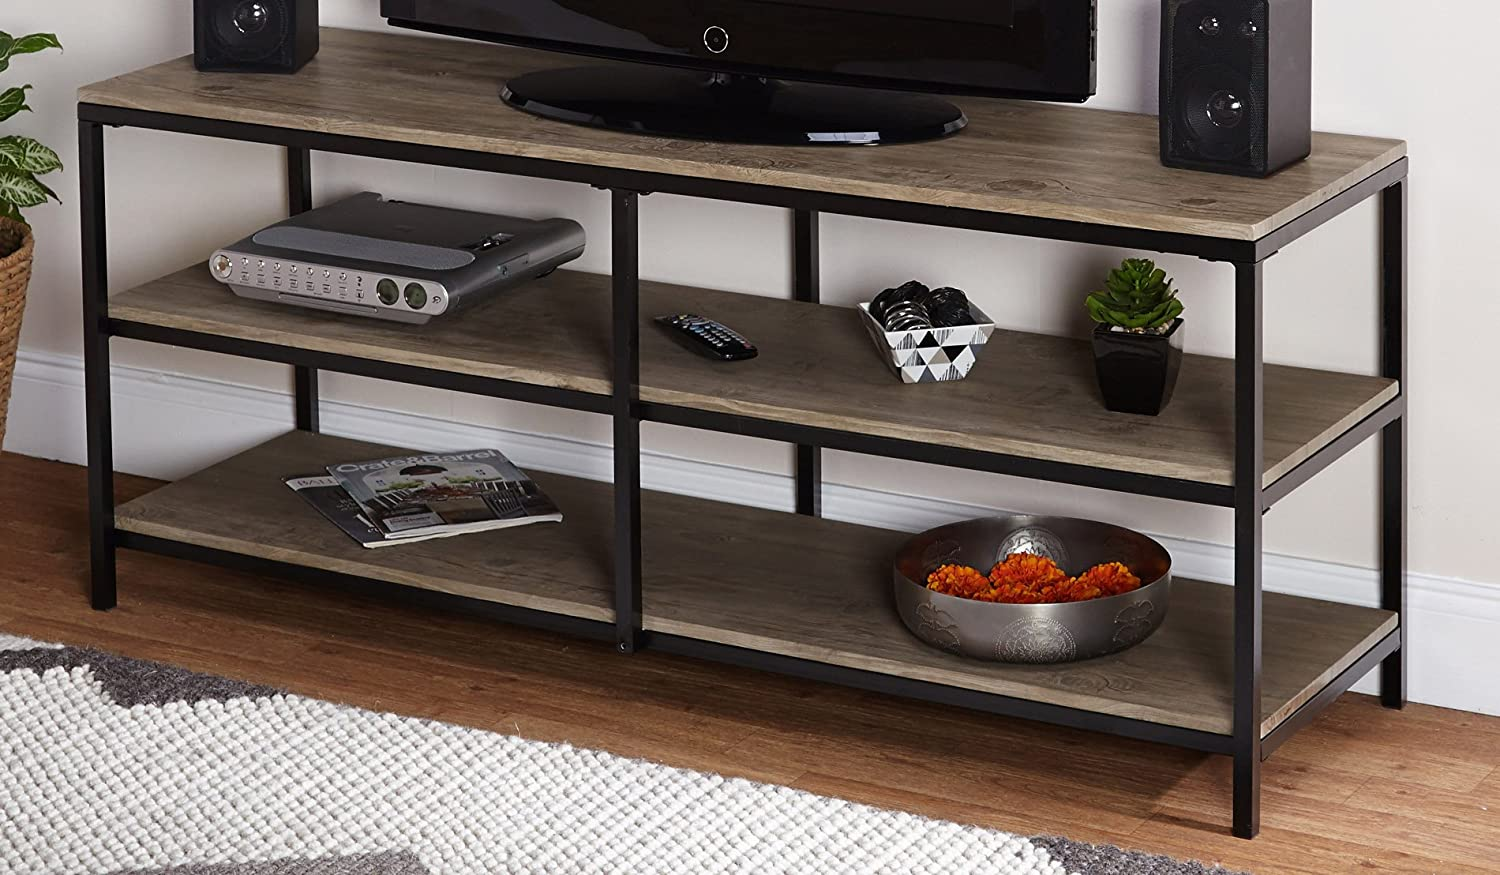 Target Marketing Systems Piazza Collection Modern Reclaimed Wooden TV Stand With Open Shelves, Wood Metal